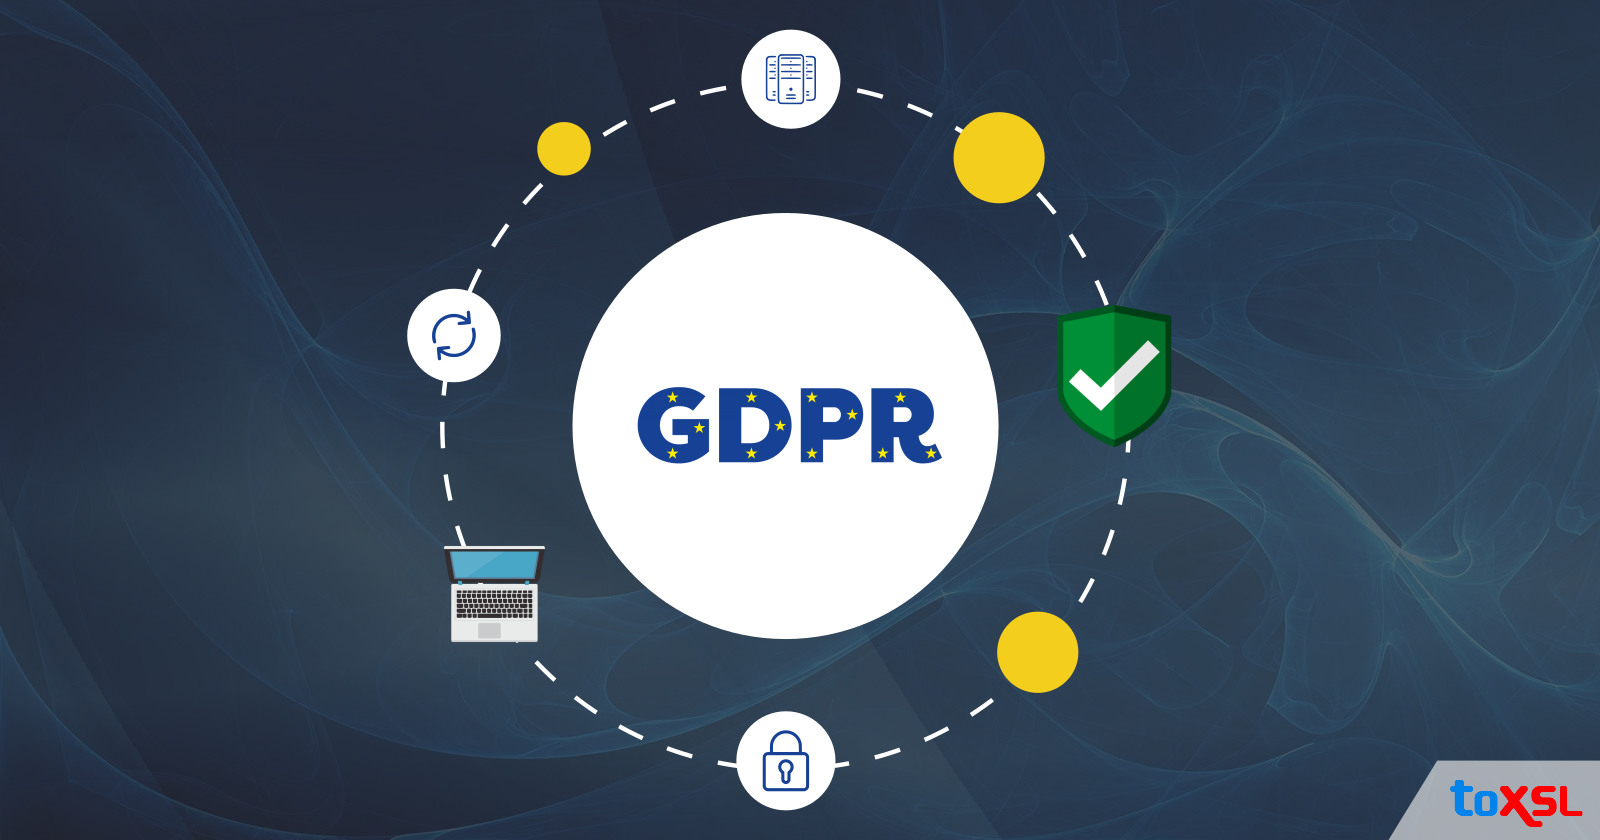 Addressing the Challenges to Make Your Test Data GDPR Compliant